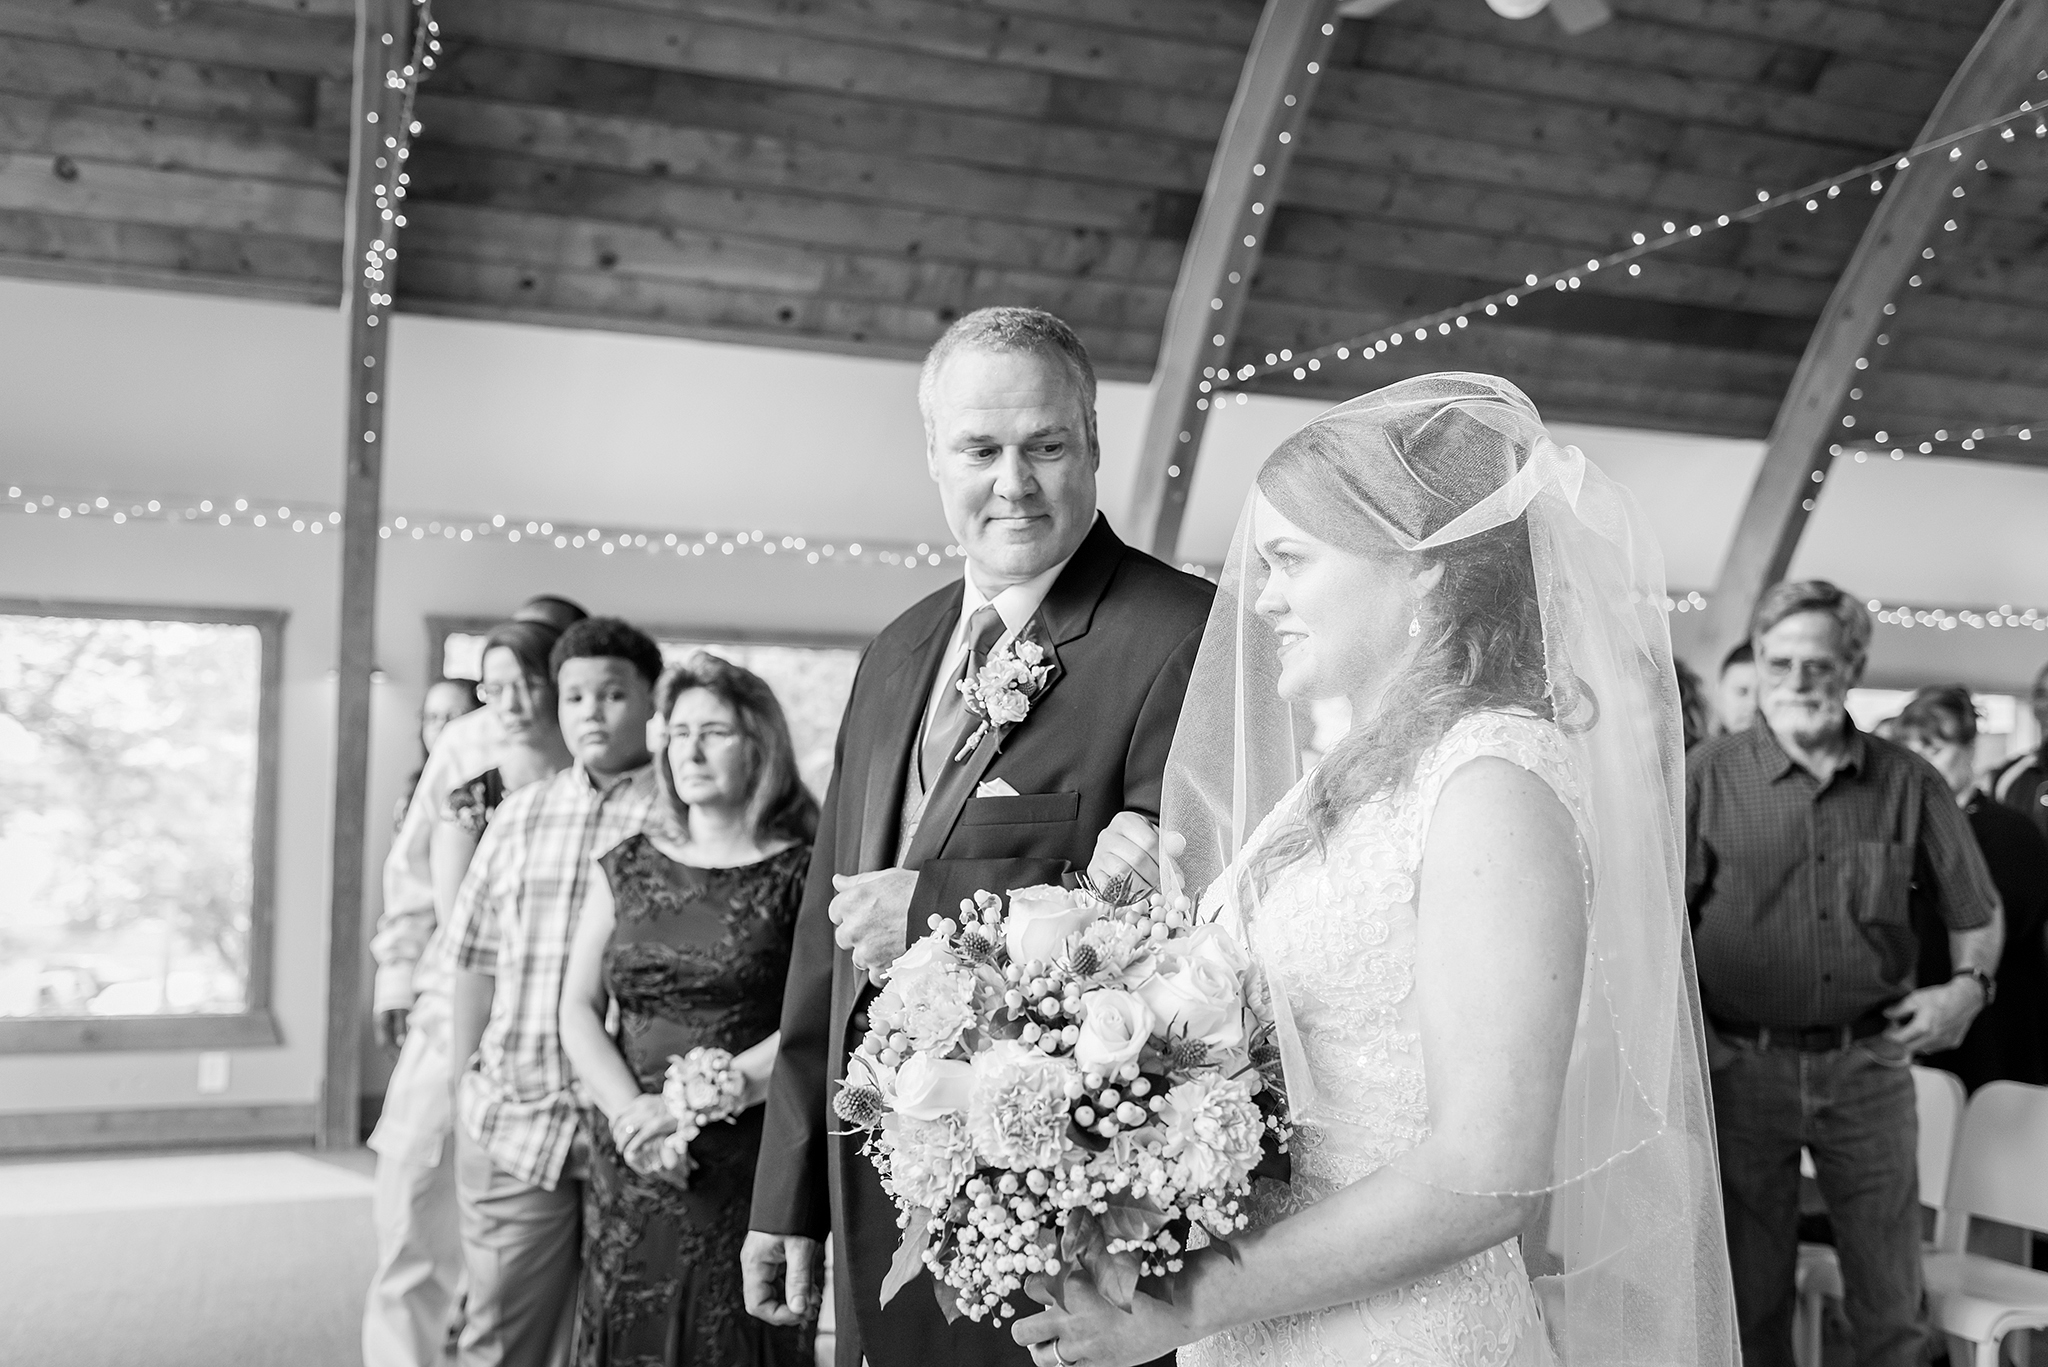 Lindsay-Adkins-Photography-Michigan-Wedding-Photographer-Sauk-Valley-Brooklyn-Michigan26